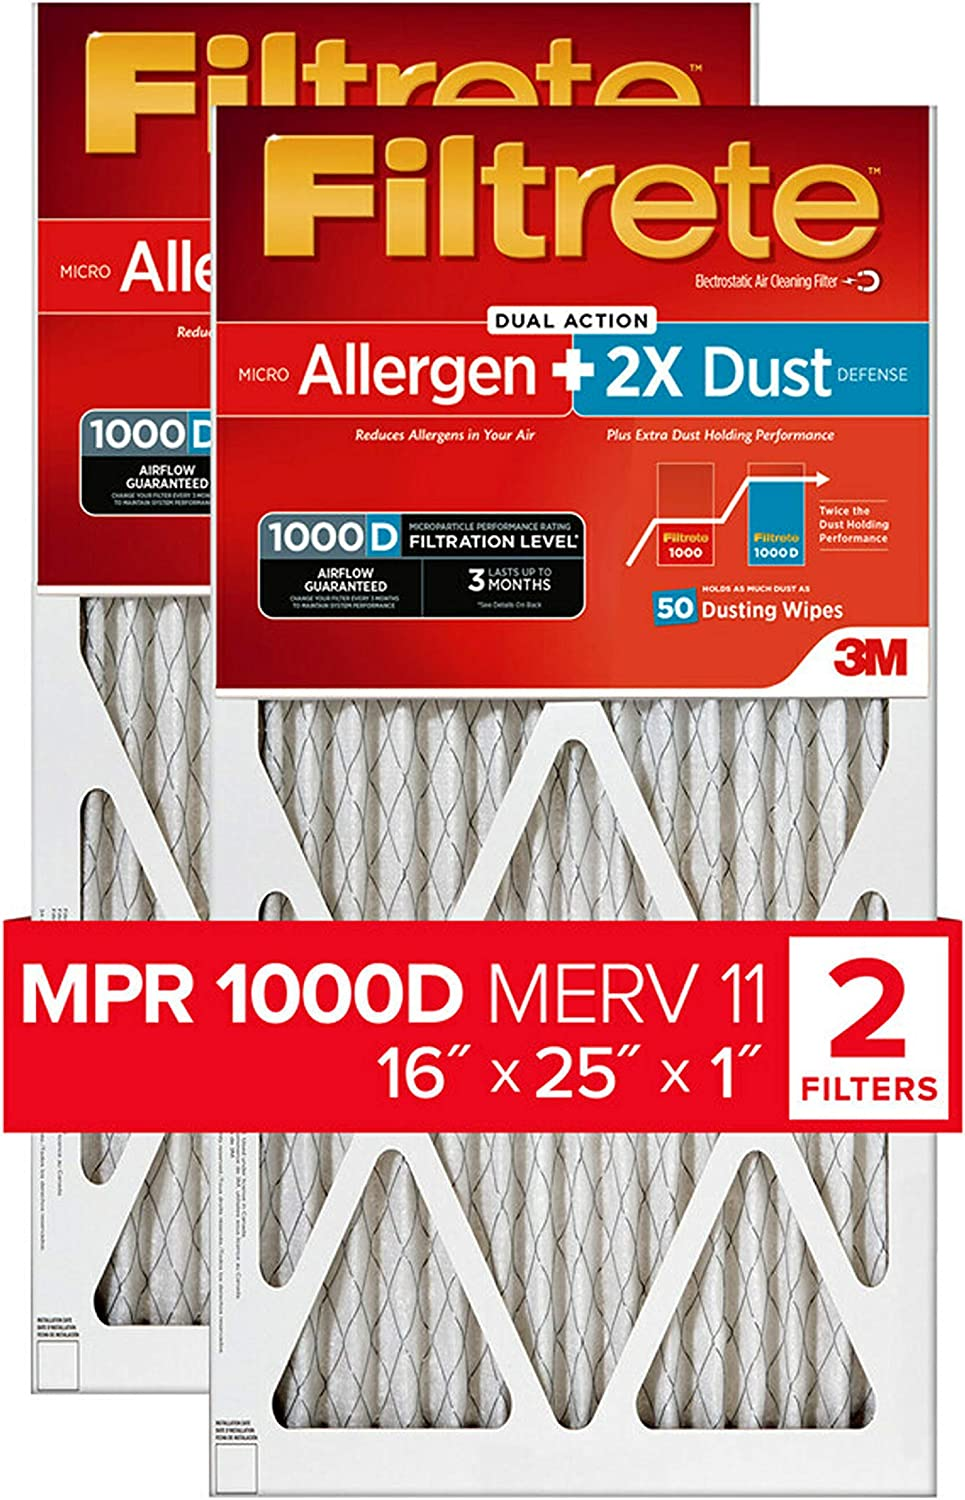 Nordic Pure 19/_3//4x21/_1//2x1 Exact MERV 11 Pleated AC Furnace Air Filters 6 Pack